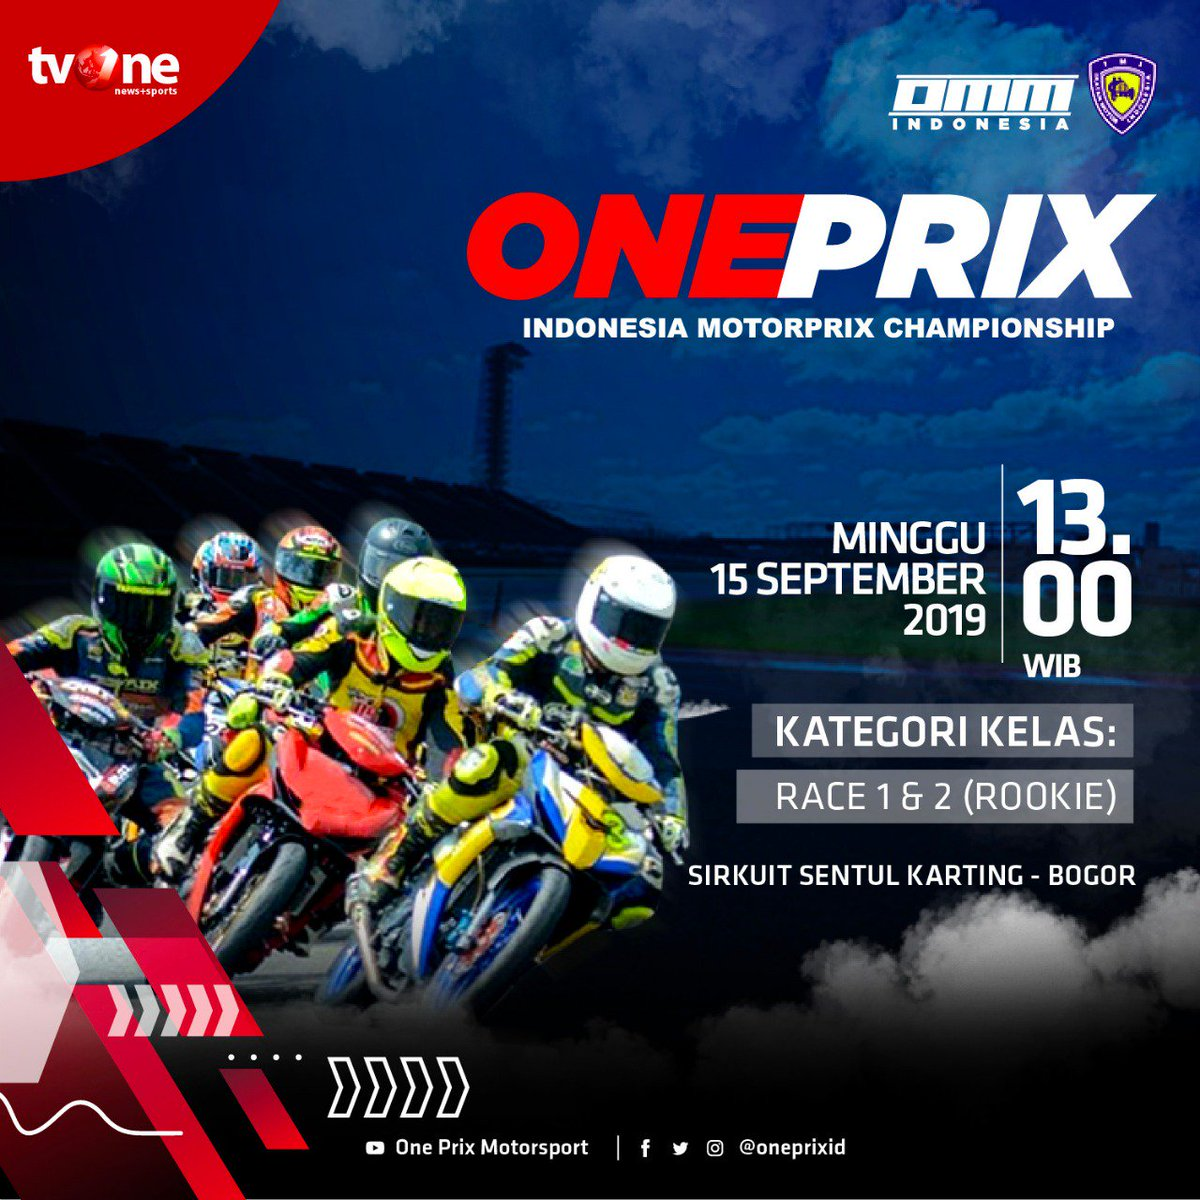 Jangan lewatkan race seru putaran 3 @oneprixid Indonesia Motorprix Championship kelas Rookie. Minggu, 15 September 2019 jam 13.00 WIB hanya di tvOne & streaming di tvOne connect, android http://bit.ly/2EMxVdm  & ios https://apple.co/2CPK6U3  #Oneprix #OneprixSentul